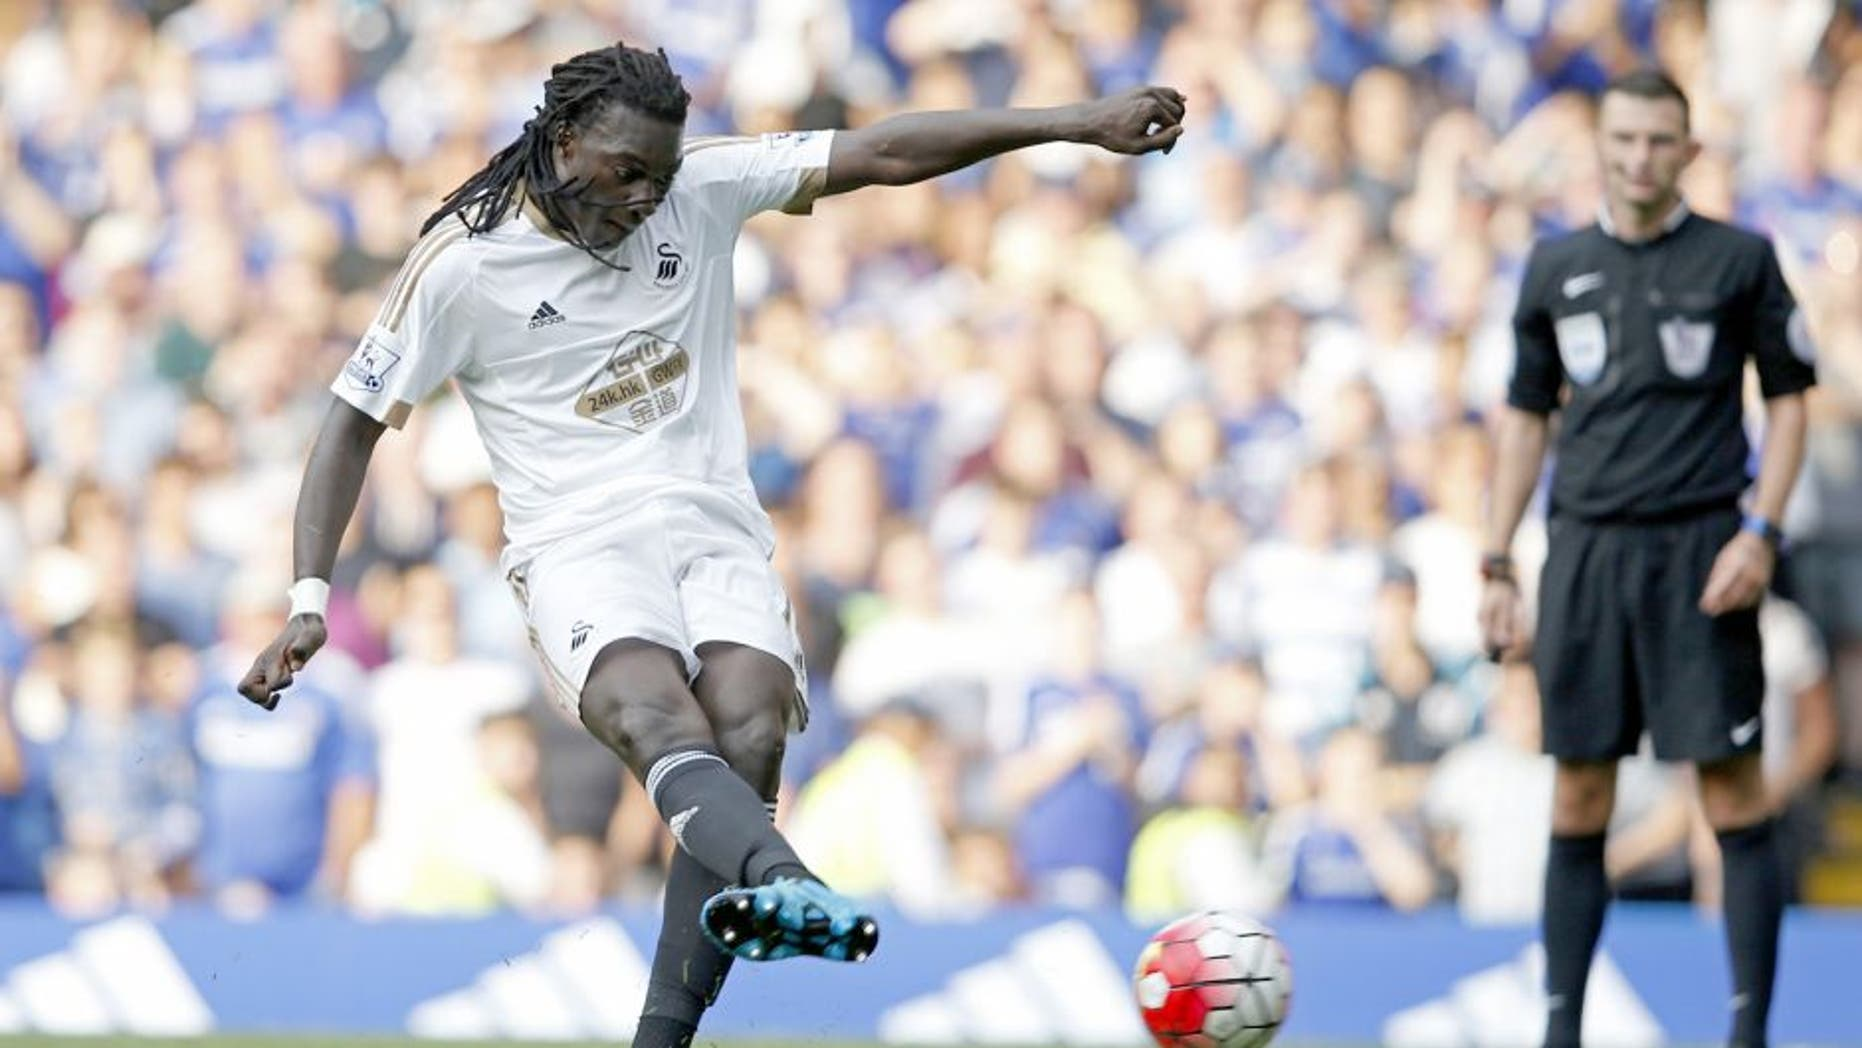 Swansea City's French striker Bafetimbi Gomis scores a second equalising goal from the penalty spot for 2-2 during the English Premier League football match between Chelsea and Swansea City at Stamford Bridge in London on August 8, 2015. AFP PHOTO / ADRIAN DENNIS RESTRICTED TO EDITORIAL USE. No use with unauthorized audio, video, data, fixture lists, club/league logos or 'live' services. Online in-match use limited to 75 images, no video emulation. No use in betting, games or single club/league/player publications. (Photo credit should read ADRIAN DENNIS/AFP/Getty Images)